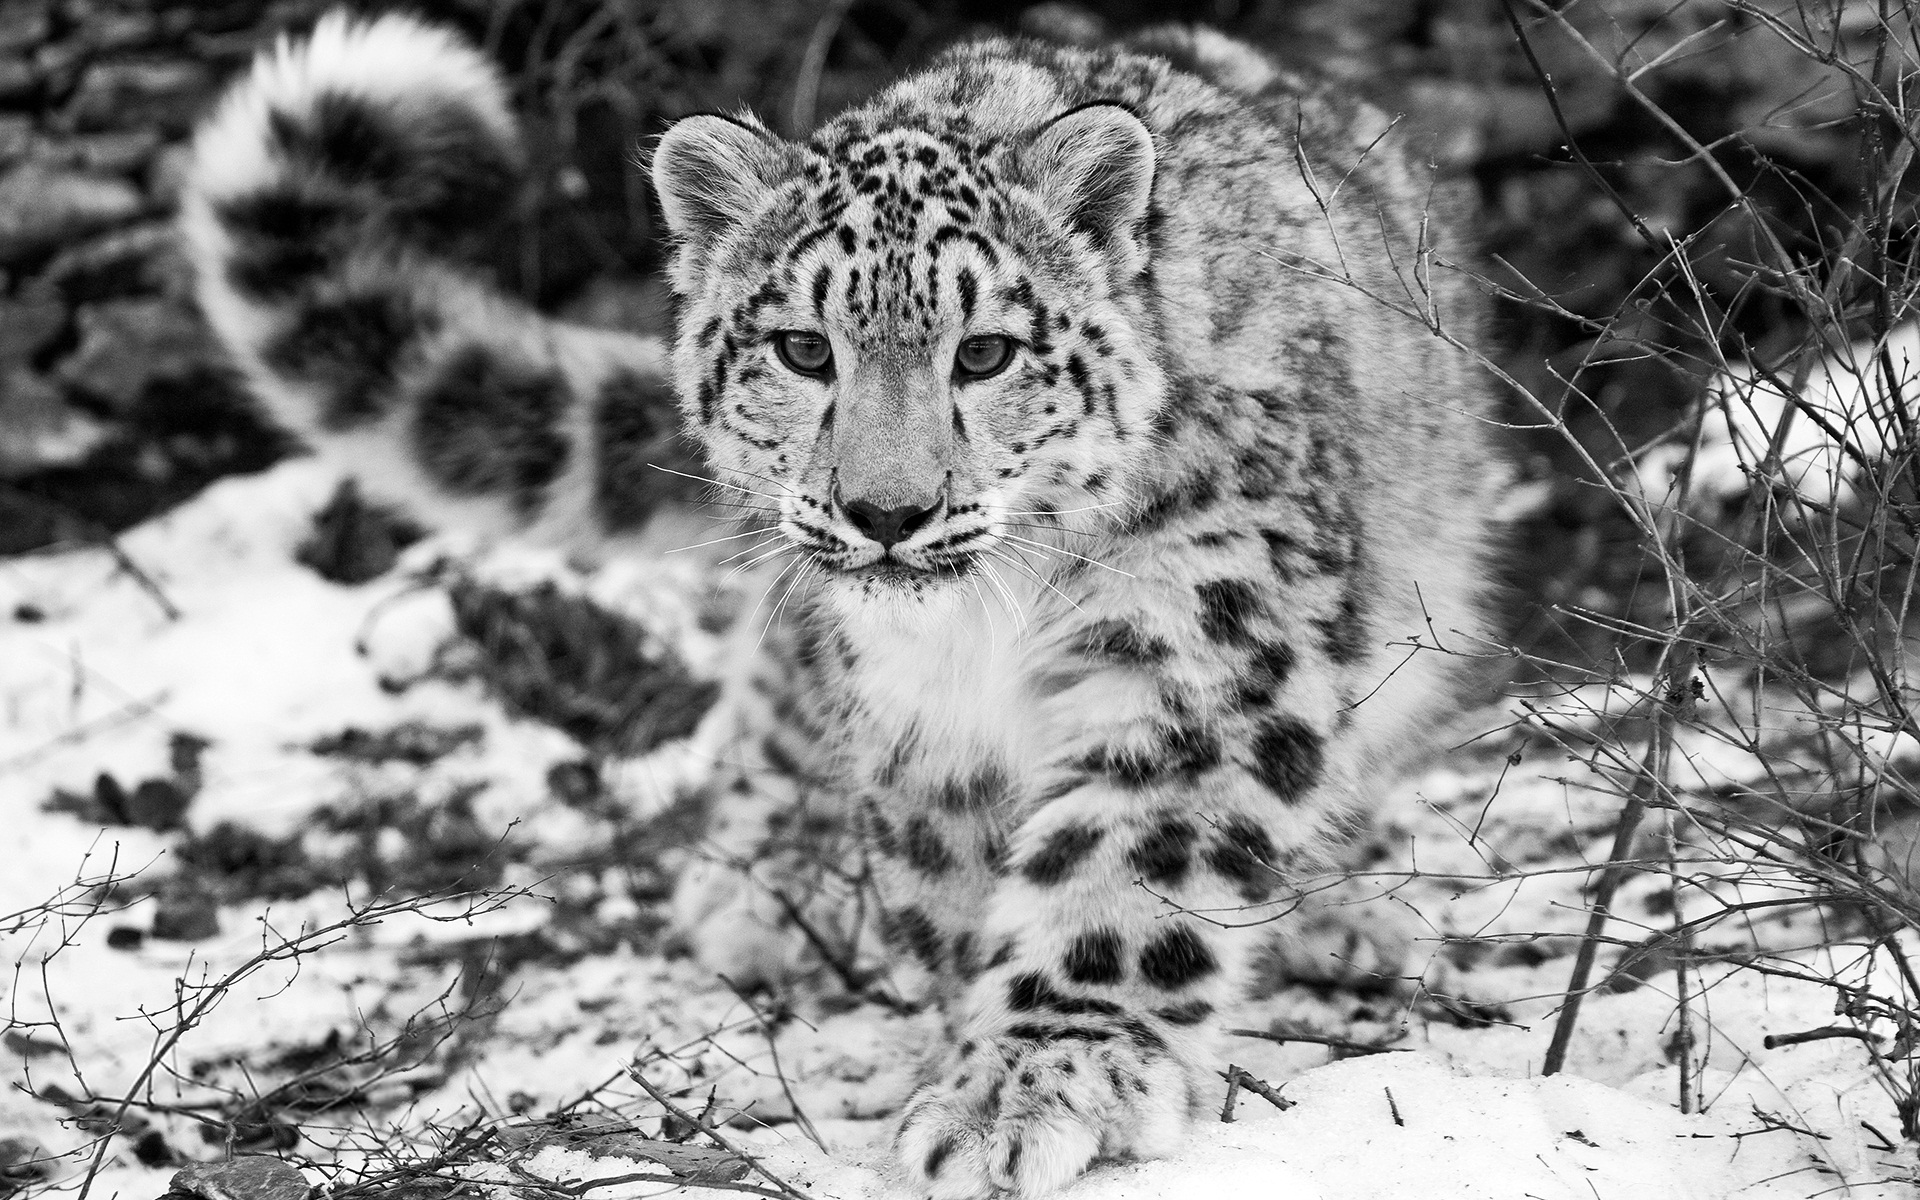 The Snow Leopard 1458.4 Kb